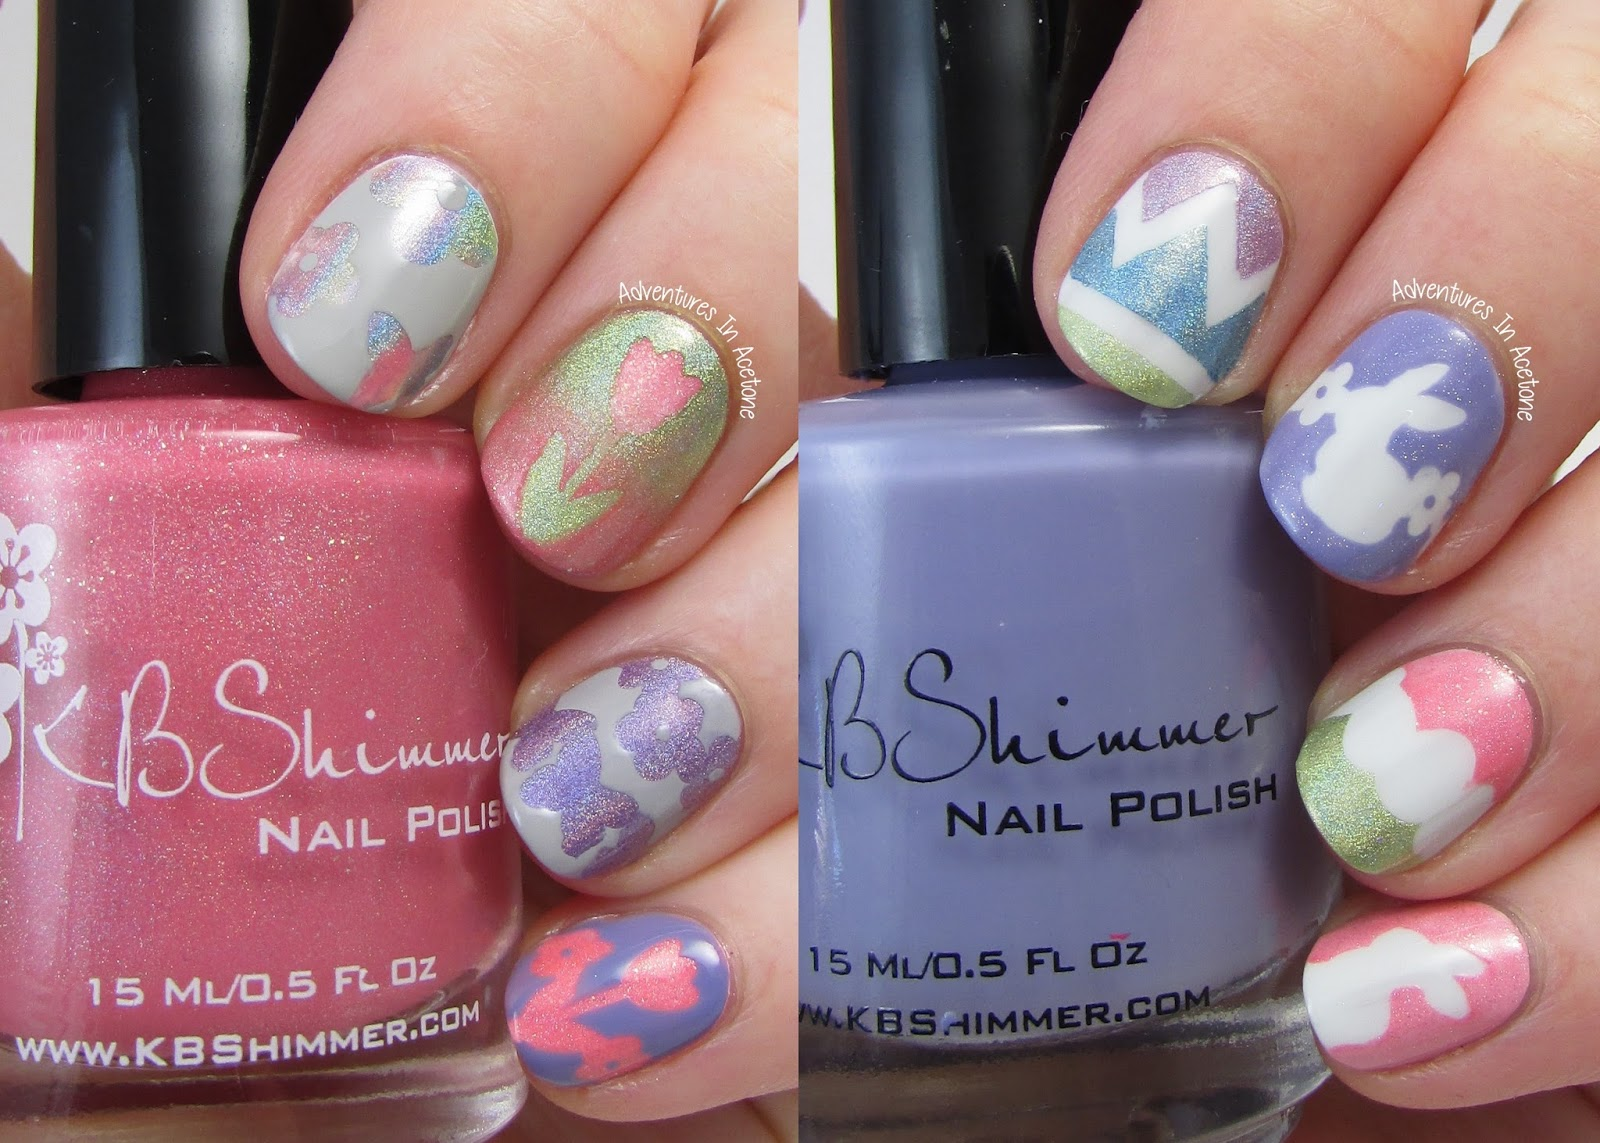 KBShimmer Spring 2015 Nail Vinyls Review! - Adventures In Acetone